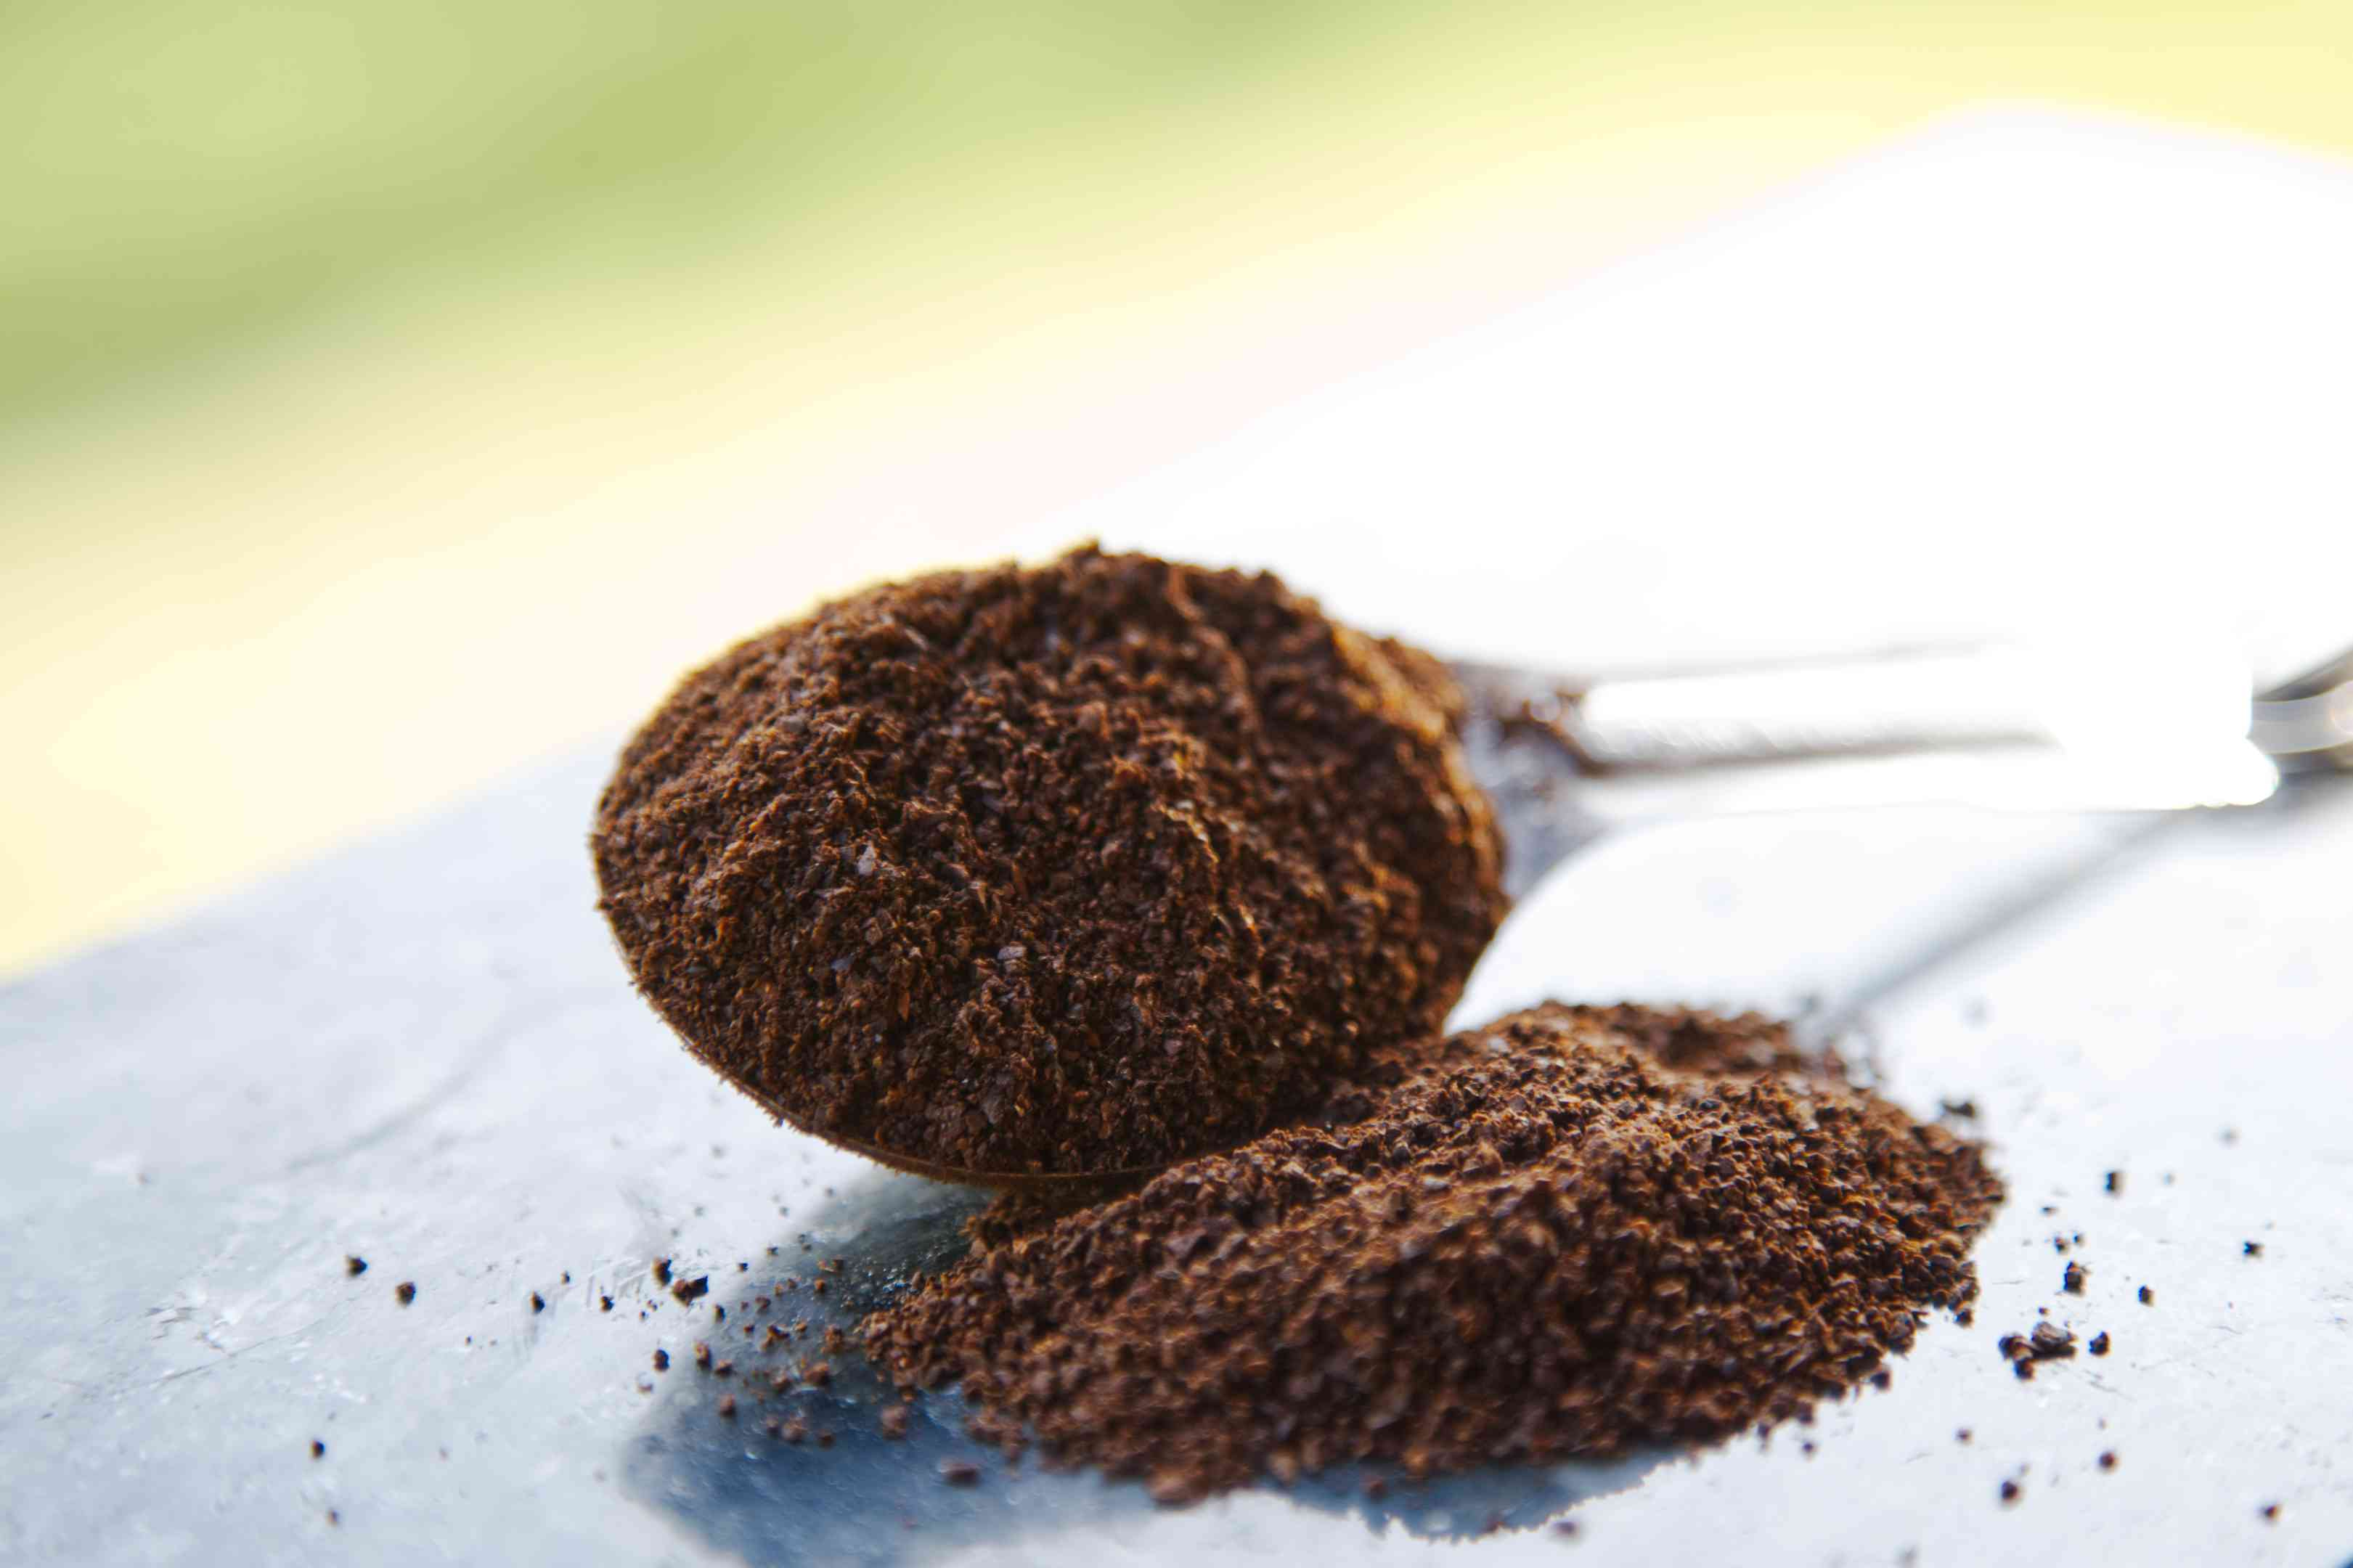 metal spoon filled with coffee grounds spilling onto table